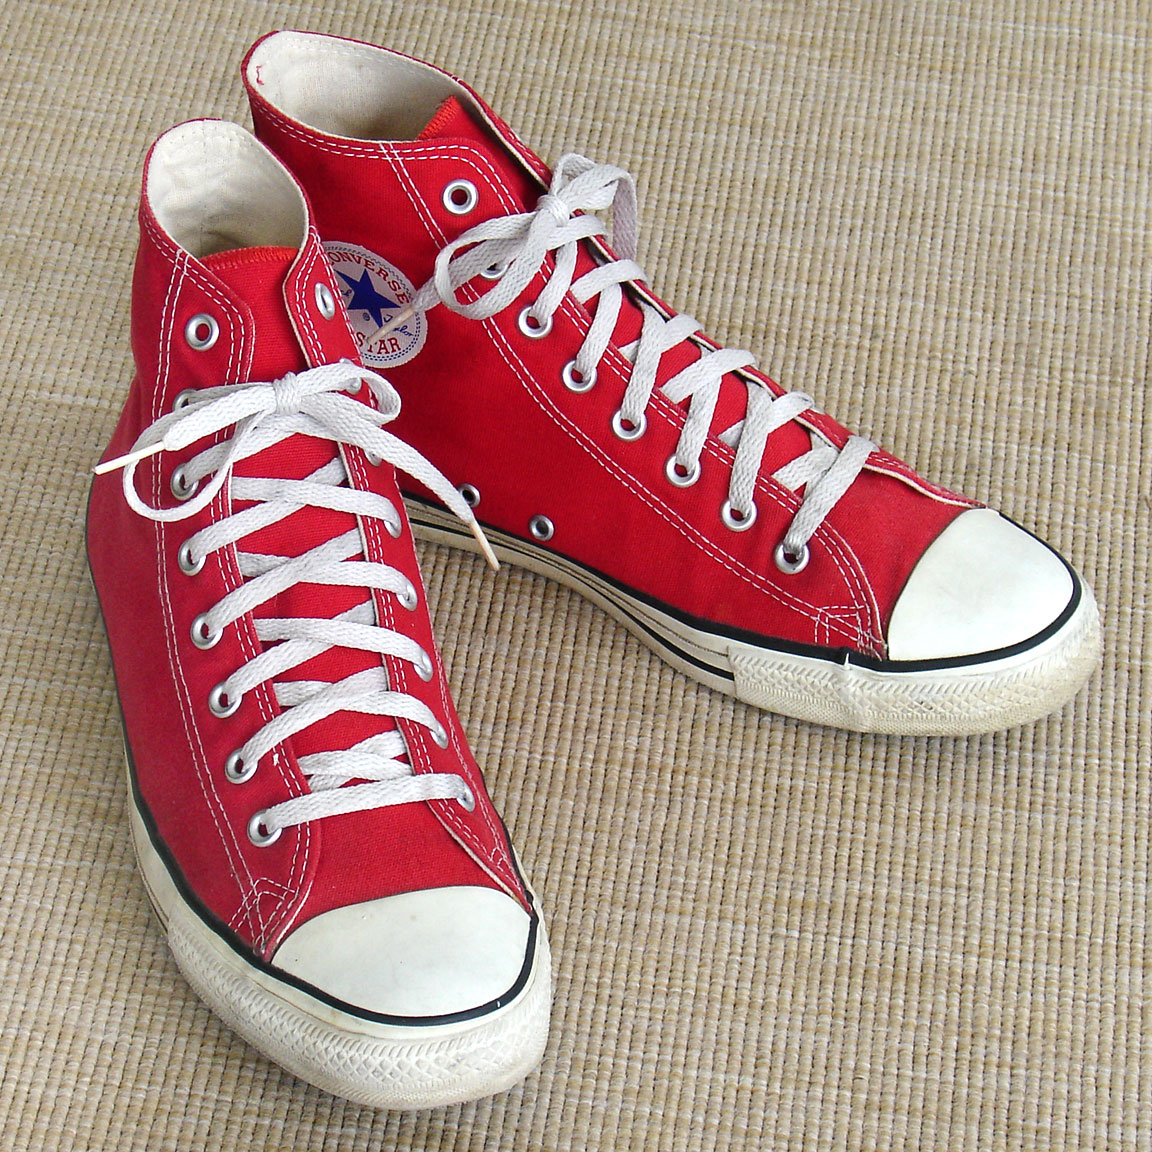 converse all star for men red